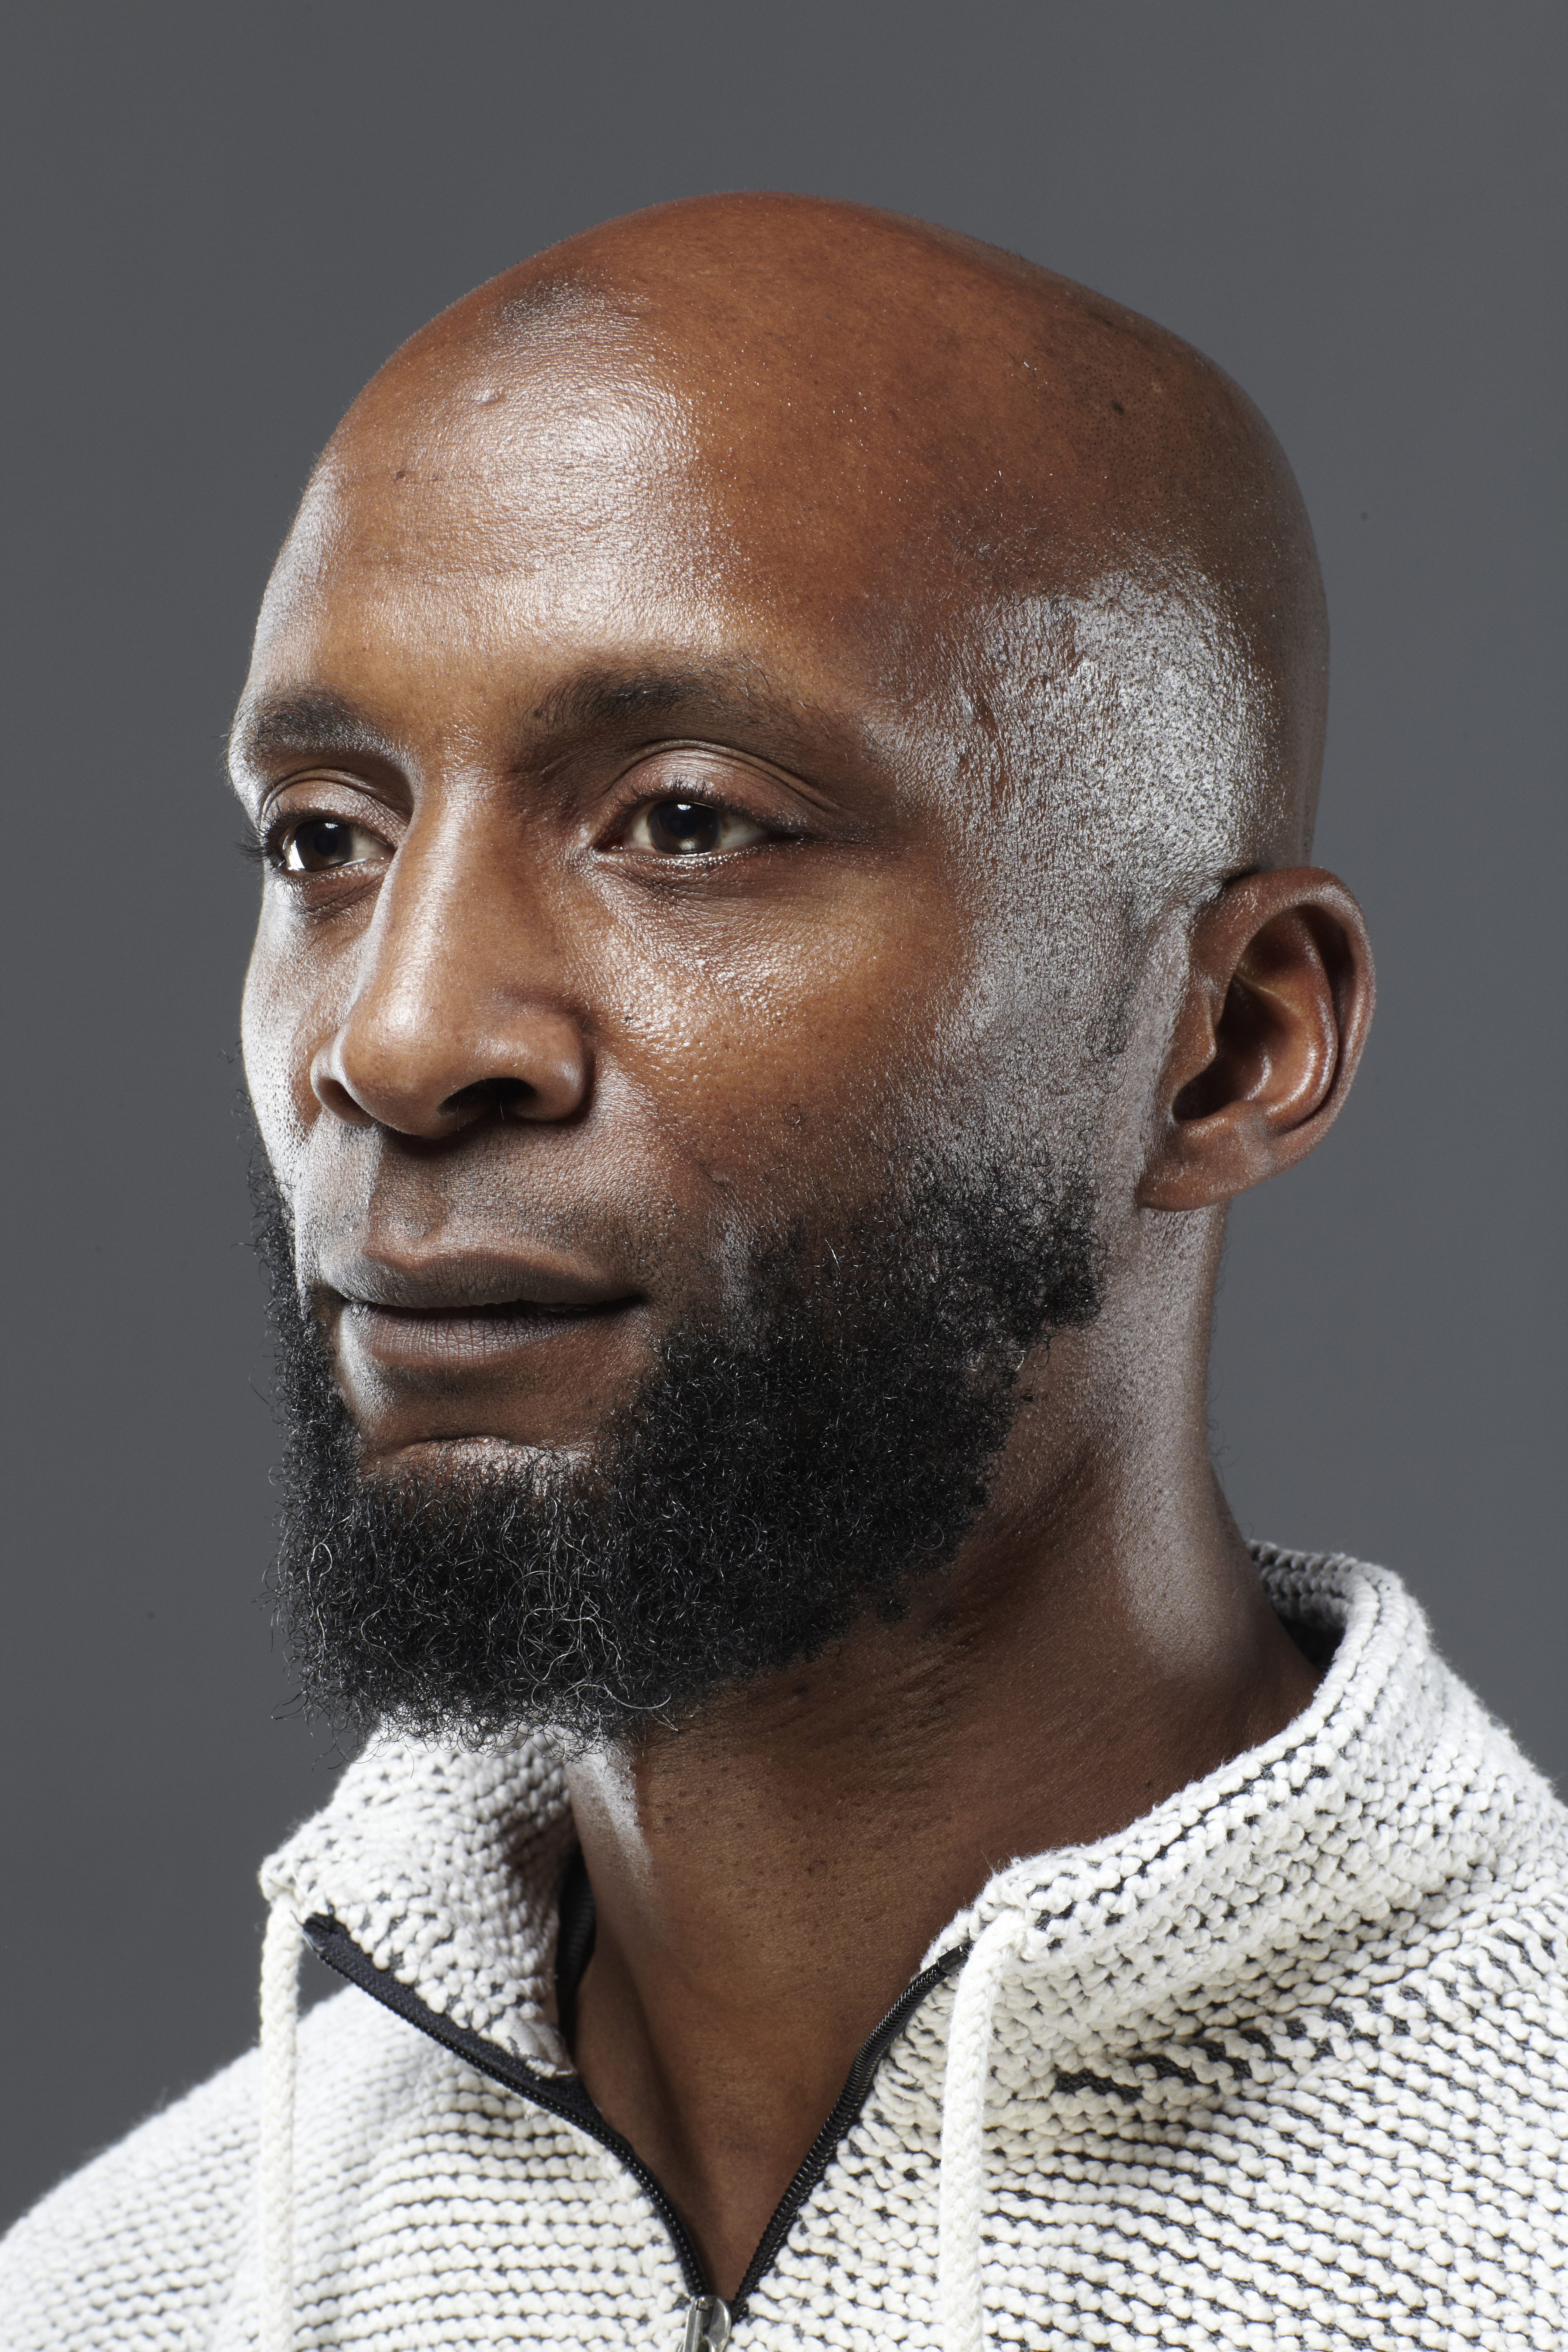 Jamal al-Harith aka Abu-Zakariya al-Britani, who changed his name from Ronald Fiddler after converting to Islam poses during a portrait session on July 4, 2011 in London,England.